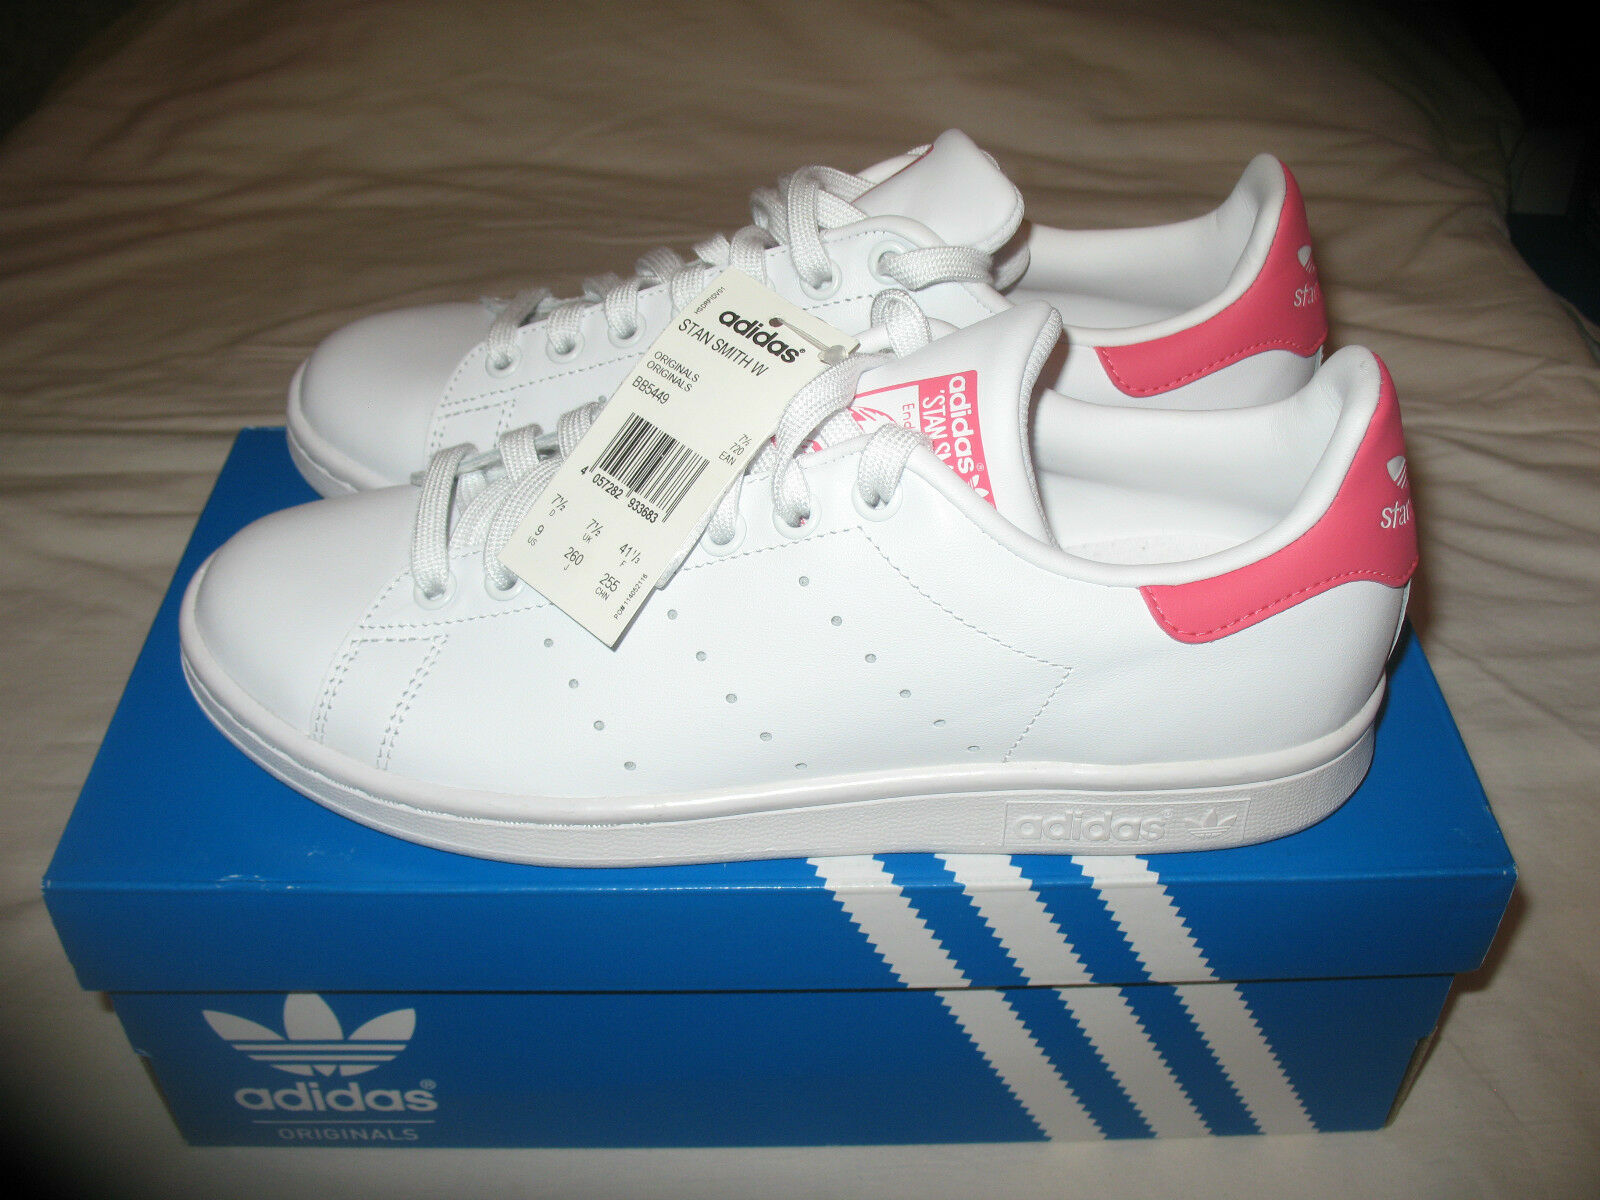 Neue adidas originals stan smith w Weiß / rosa uns 9,5 f 42 bb5449